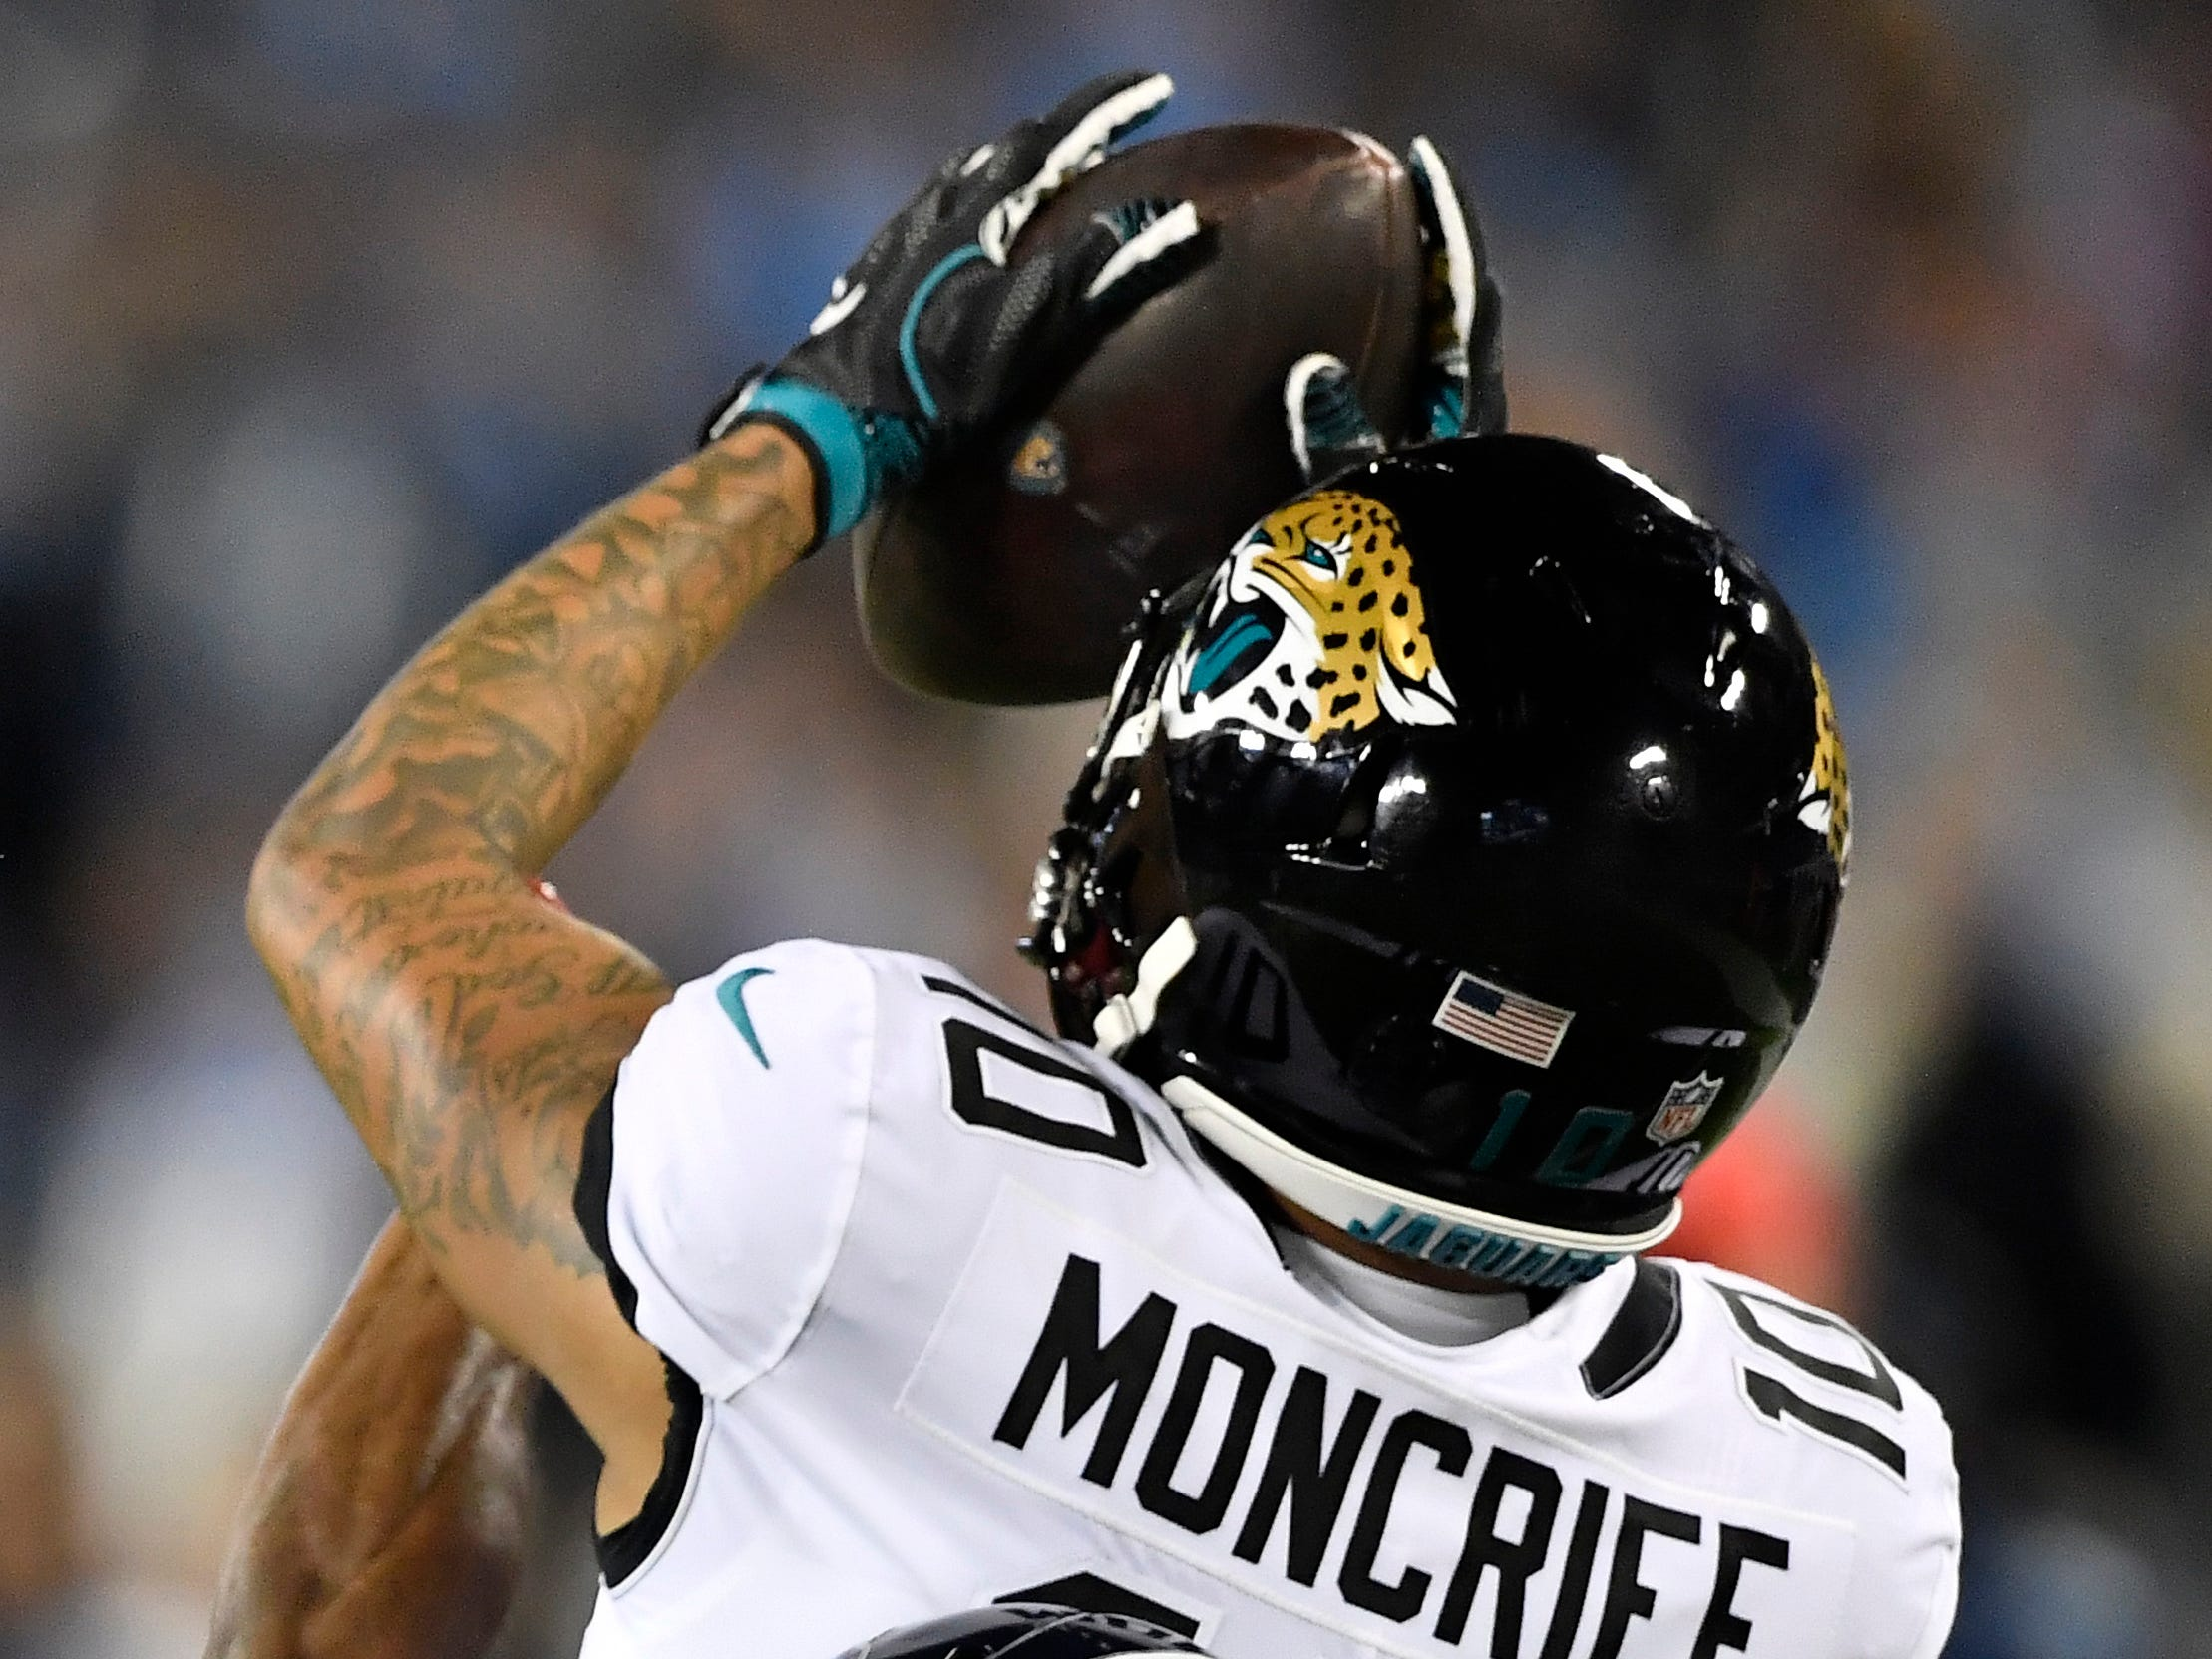 Jaguars wide receiver Donte Moncrief (10) pulls down a catch in the first half at Nissan Stadium Thursday, Dec. 6, 2018, in Nashville, Tenn.